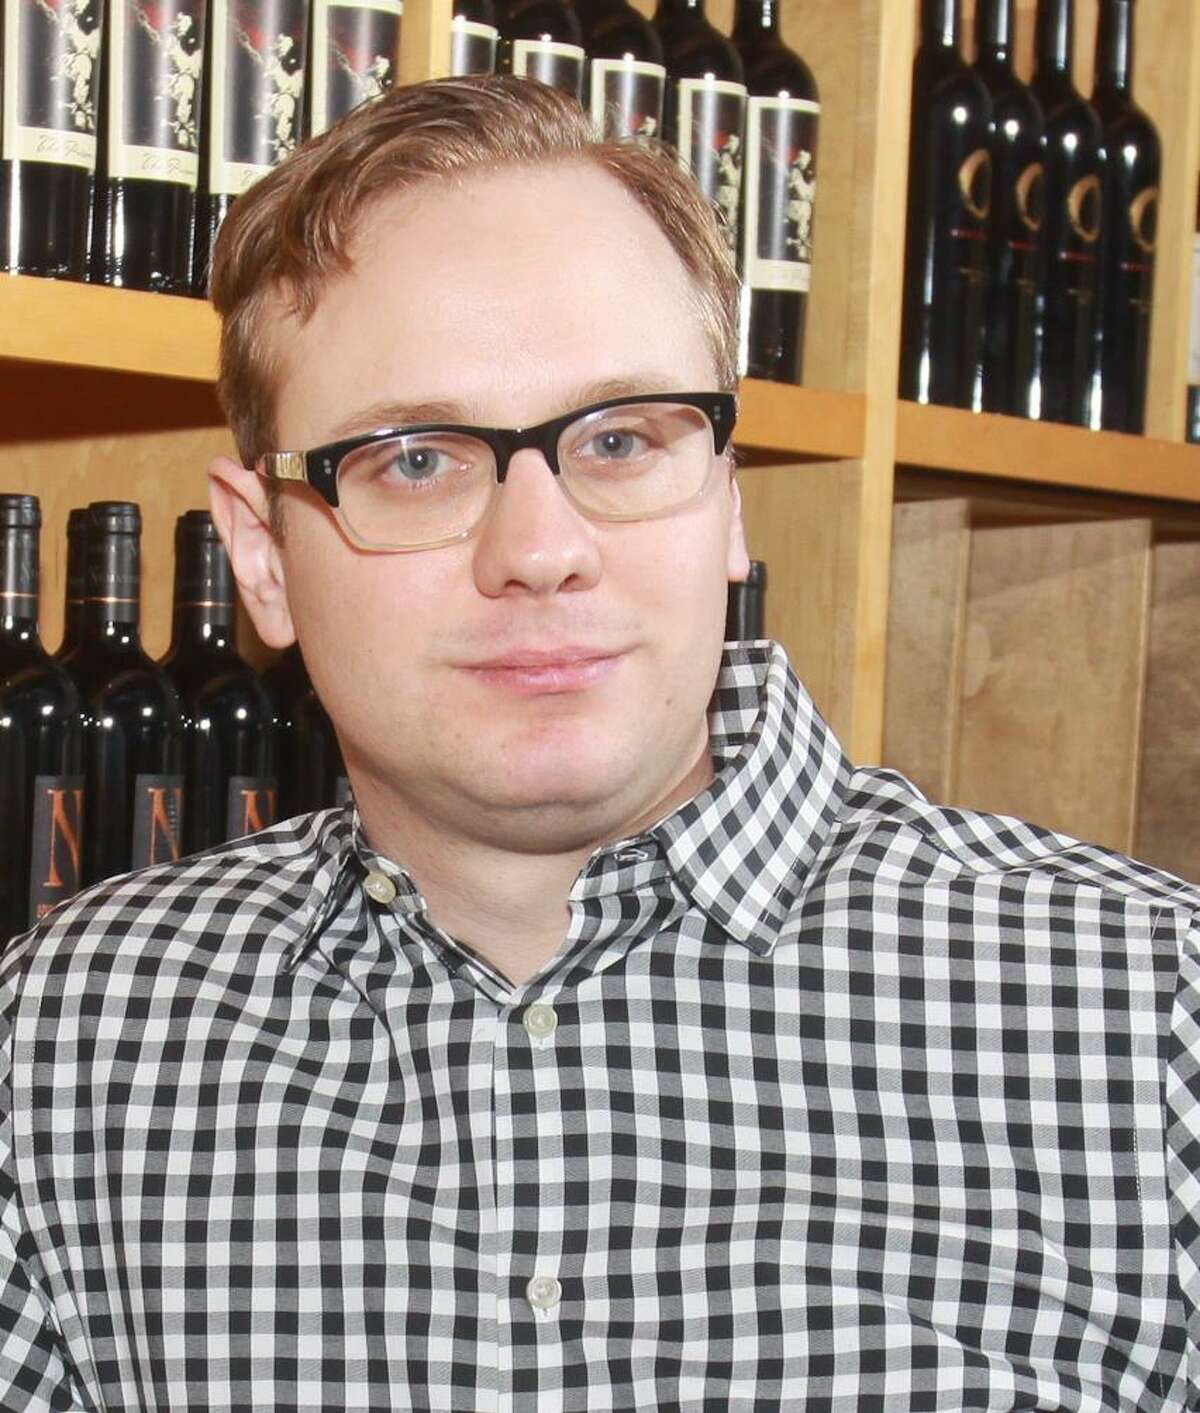 Marcus Gausepohl is the new wine guy at Mark's American Cuisine.